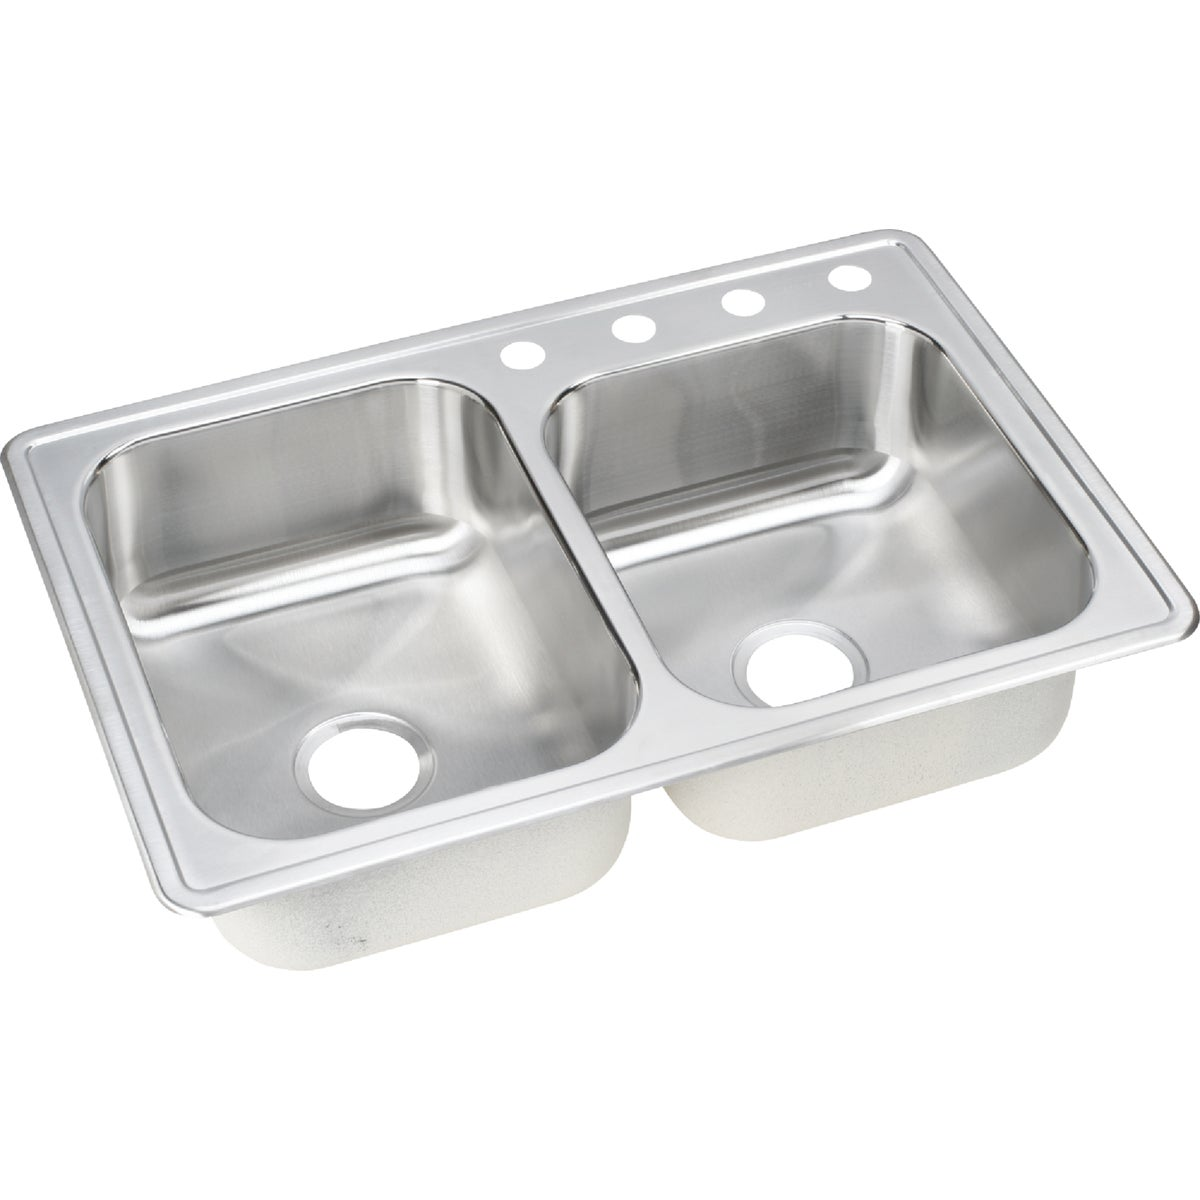 "8"" SS DOUBLE-BOWL SINK - NLB2504 by Elkay Neptune"